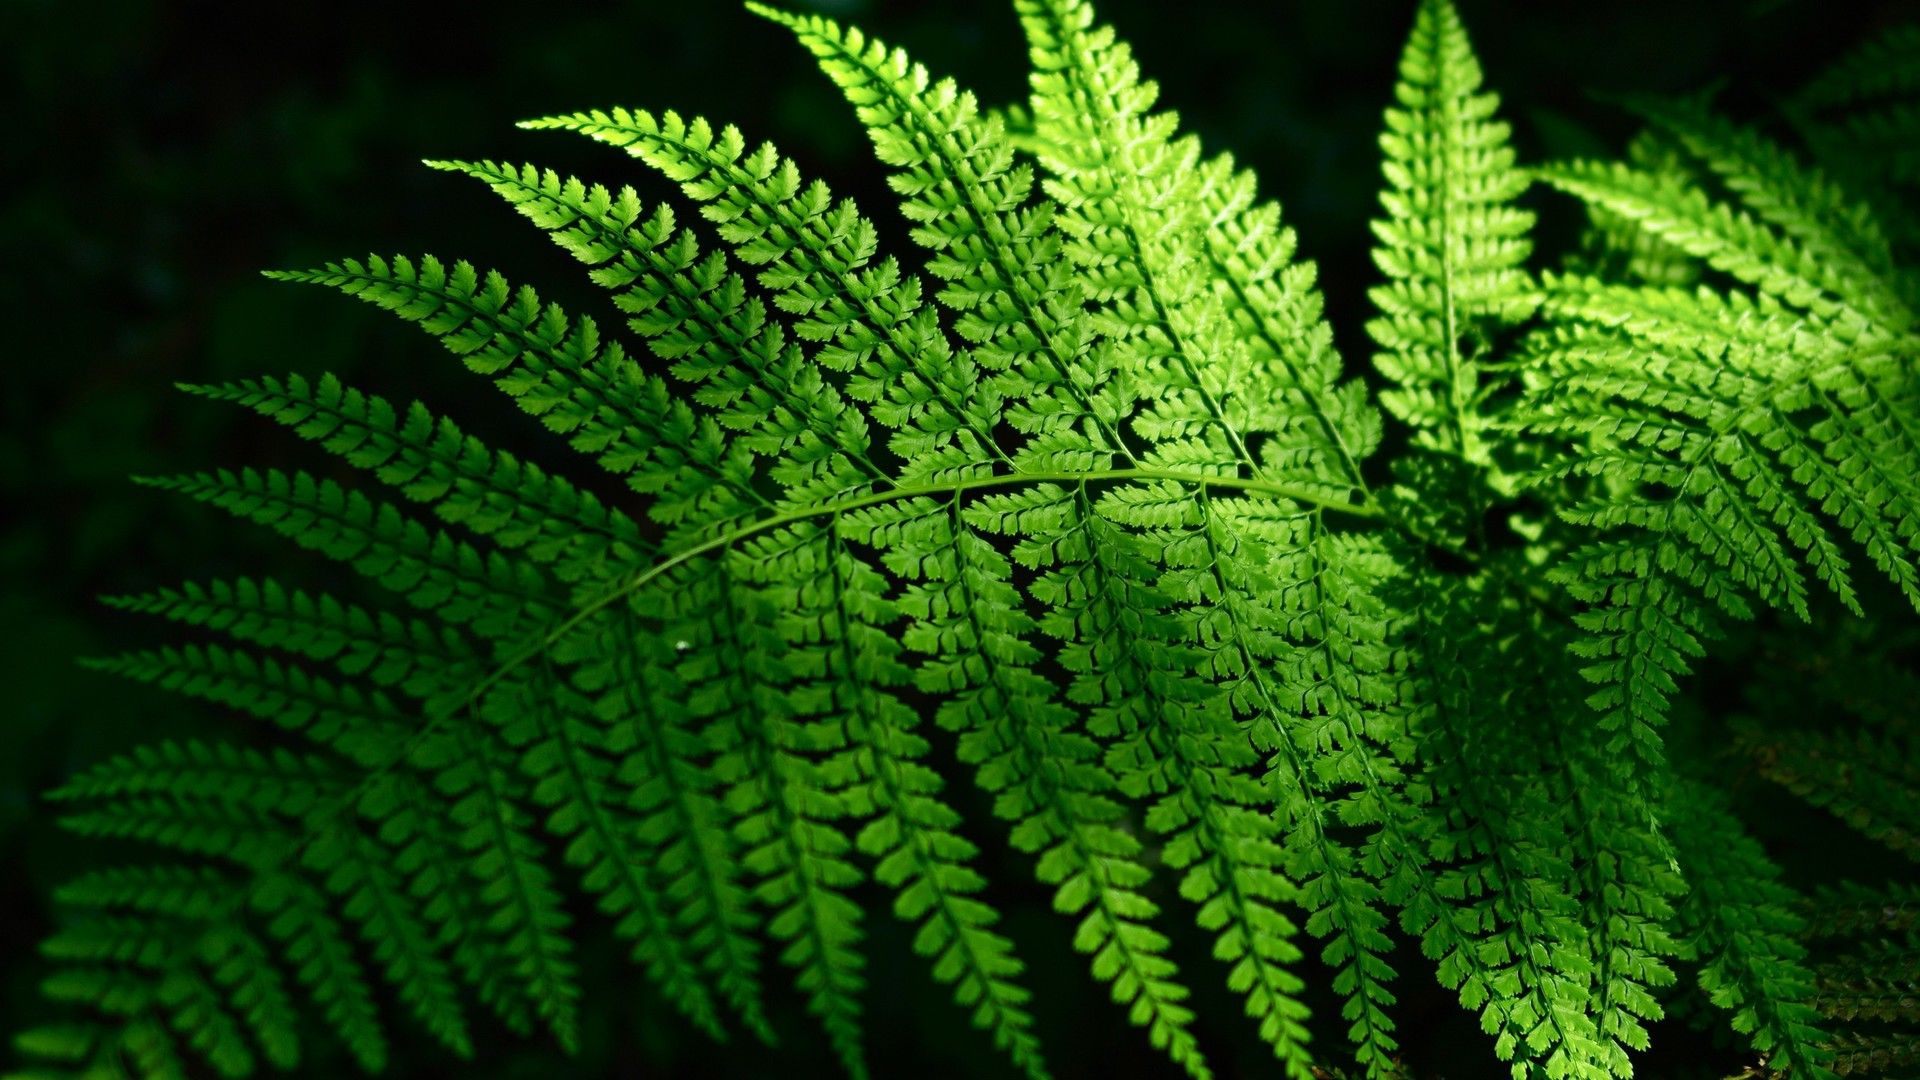 Fern download free wallpapers for pc in hd